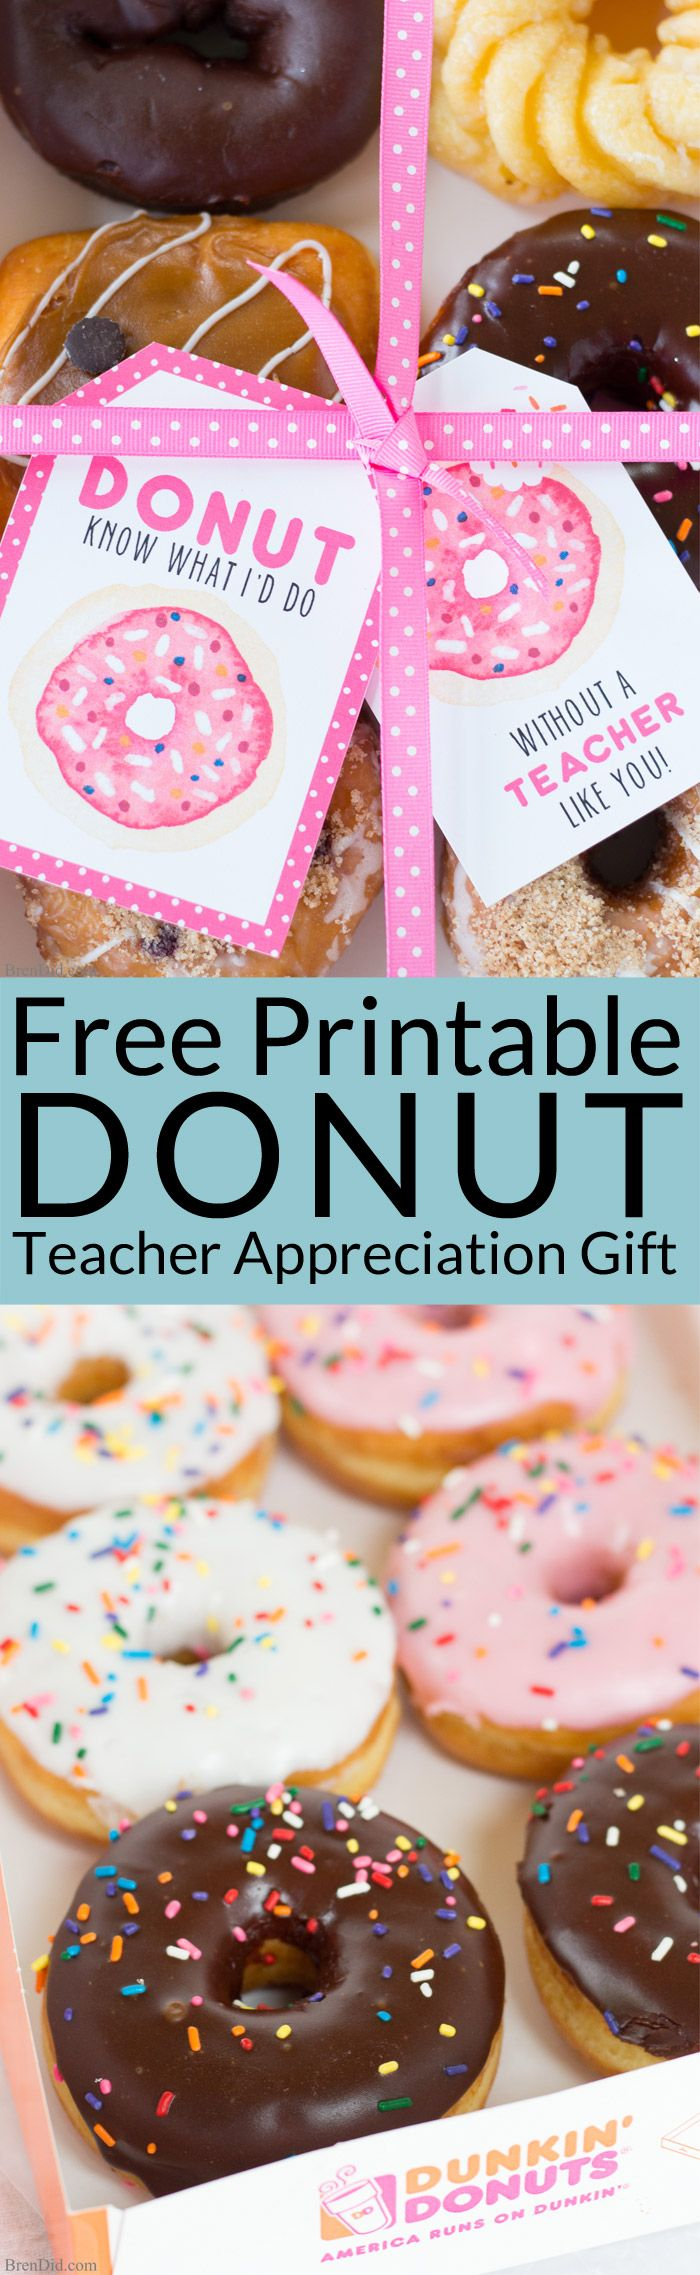 The end of school year is approaching! Tell your teacher thank you with this easy teacher appreciation gift and free printable gift tag featuring fun donut sayings. Great idea for teacher appreciation week or end of year teacher gifts. DIY Teacher Gifts, Simple Teacher Appreciation Gift, Teacher Appreciation Gift Ideas. Sponsored.